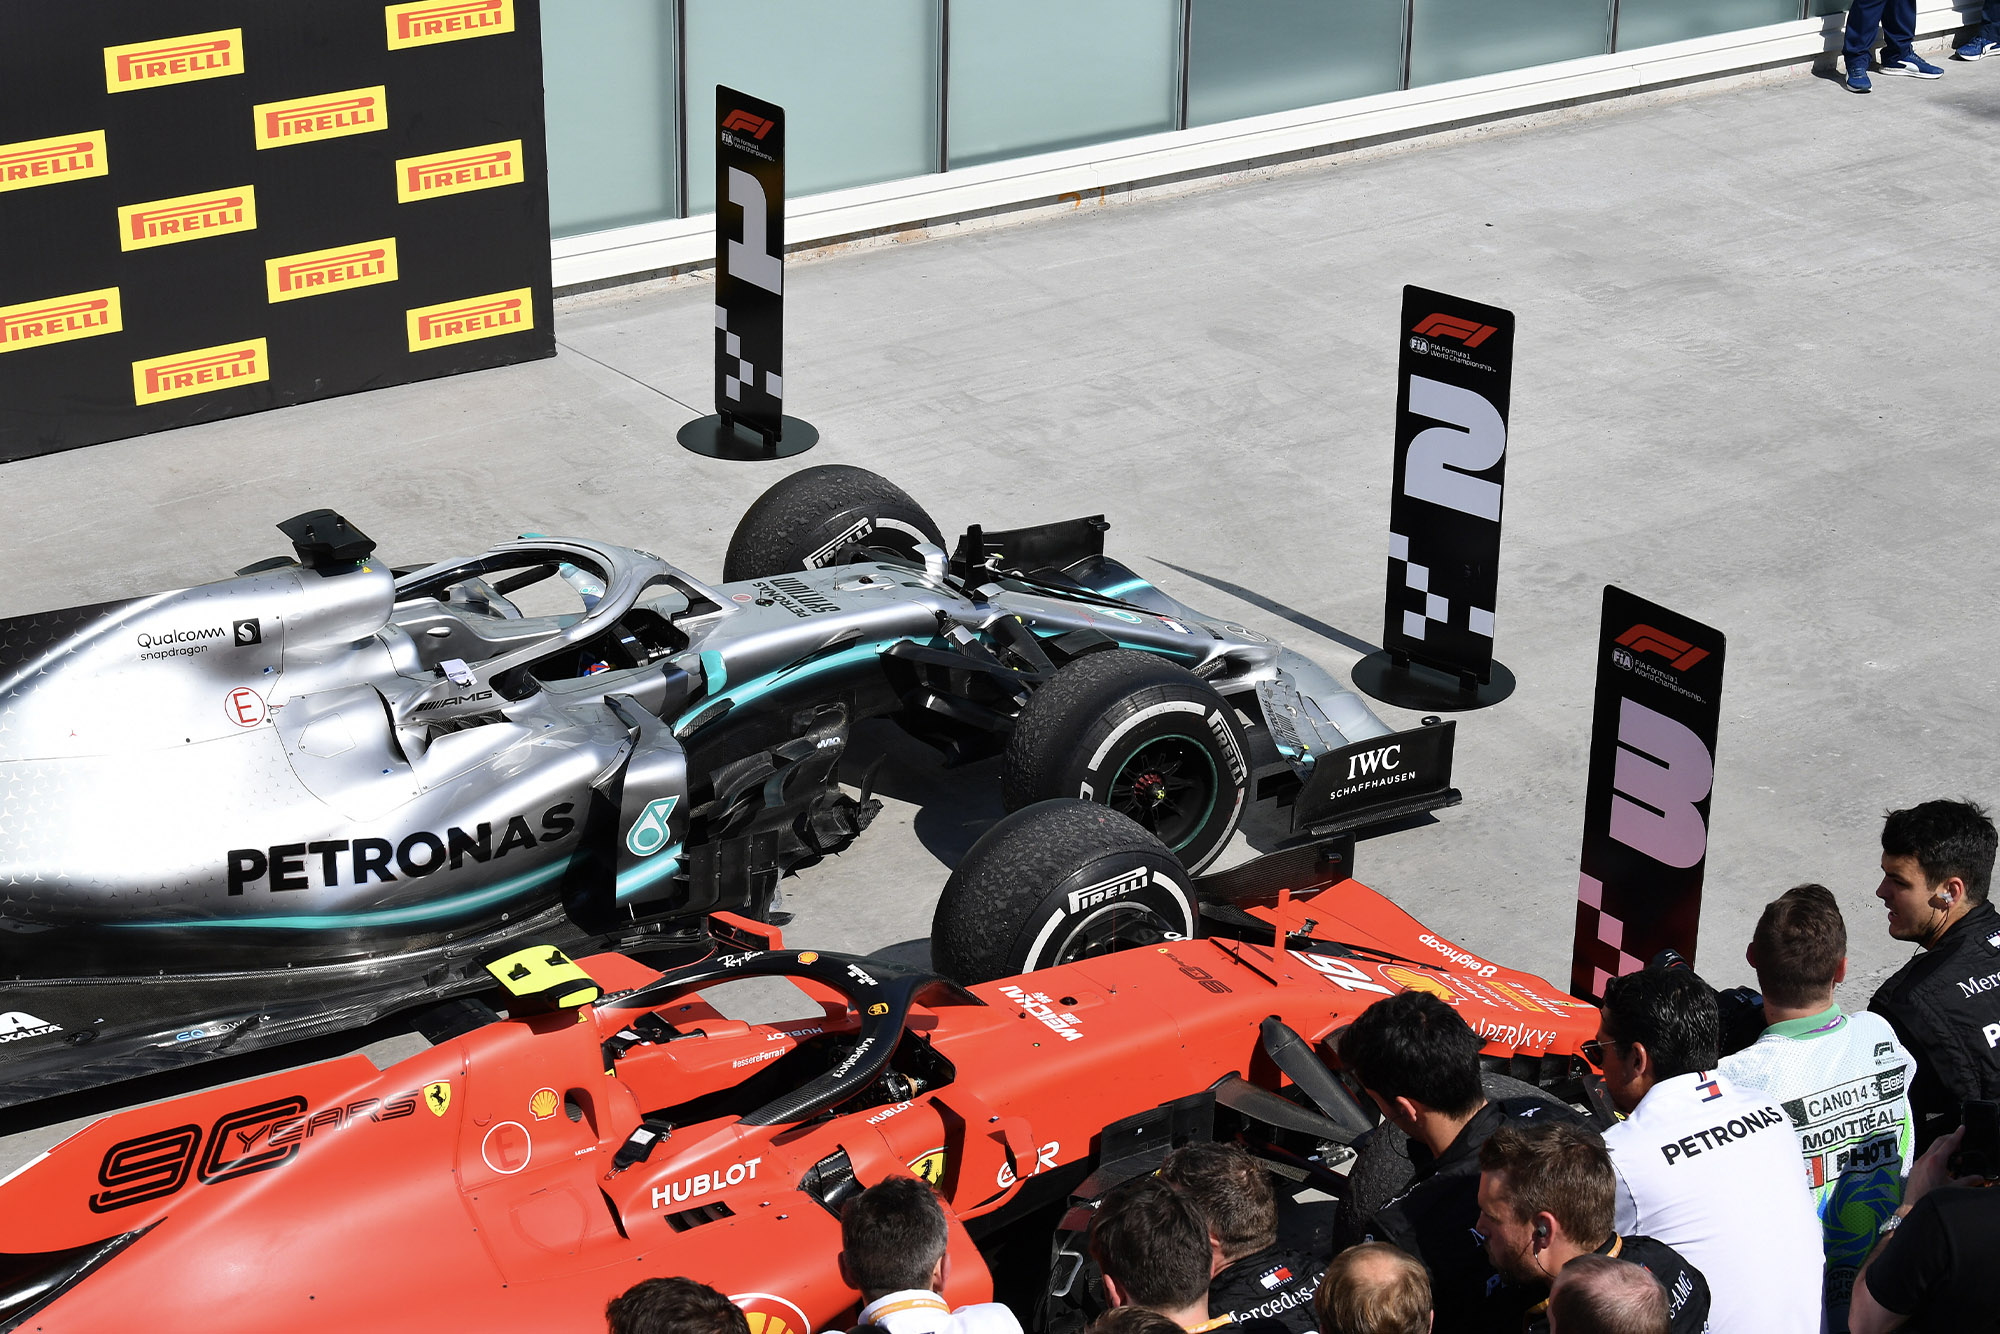 The scene in parc ferme after the 2019 Canadian Grand Prix